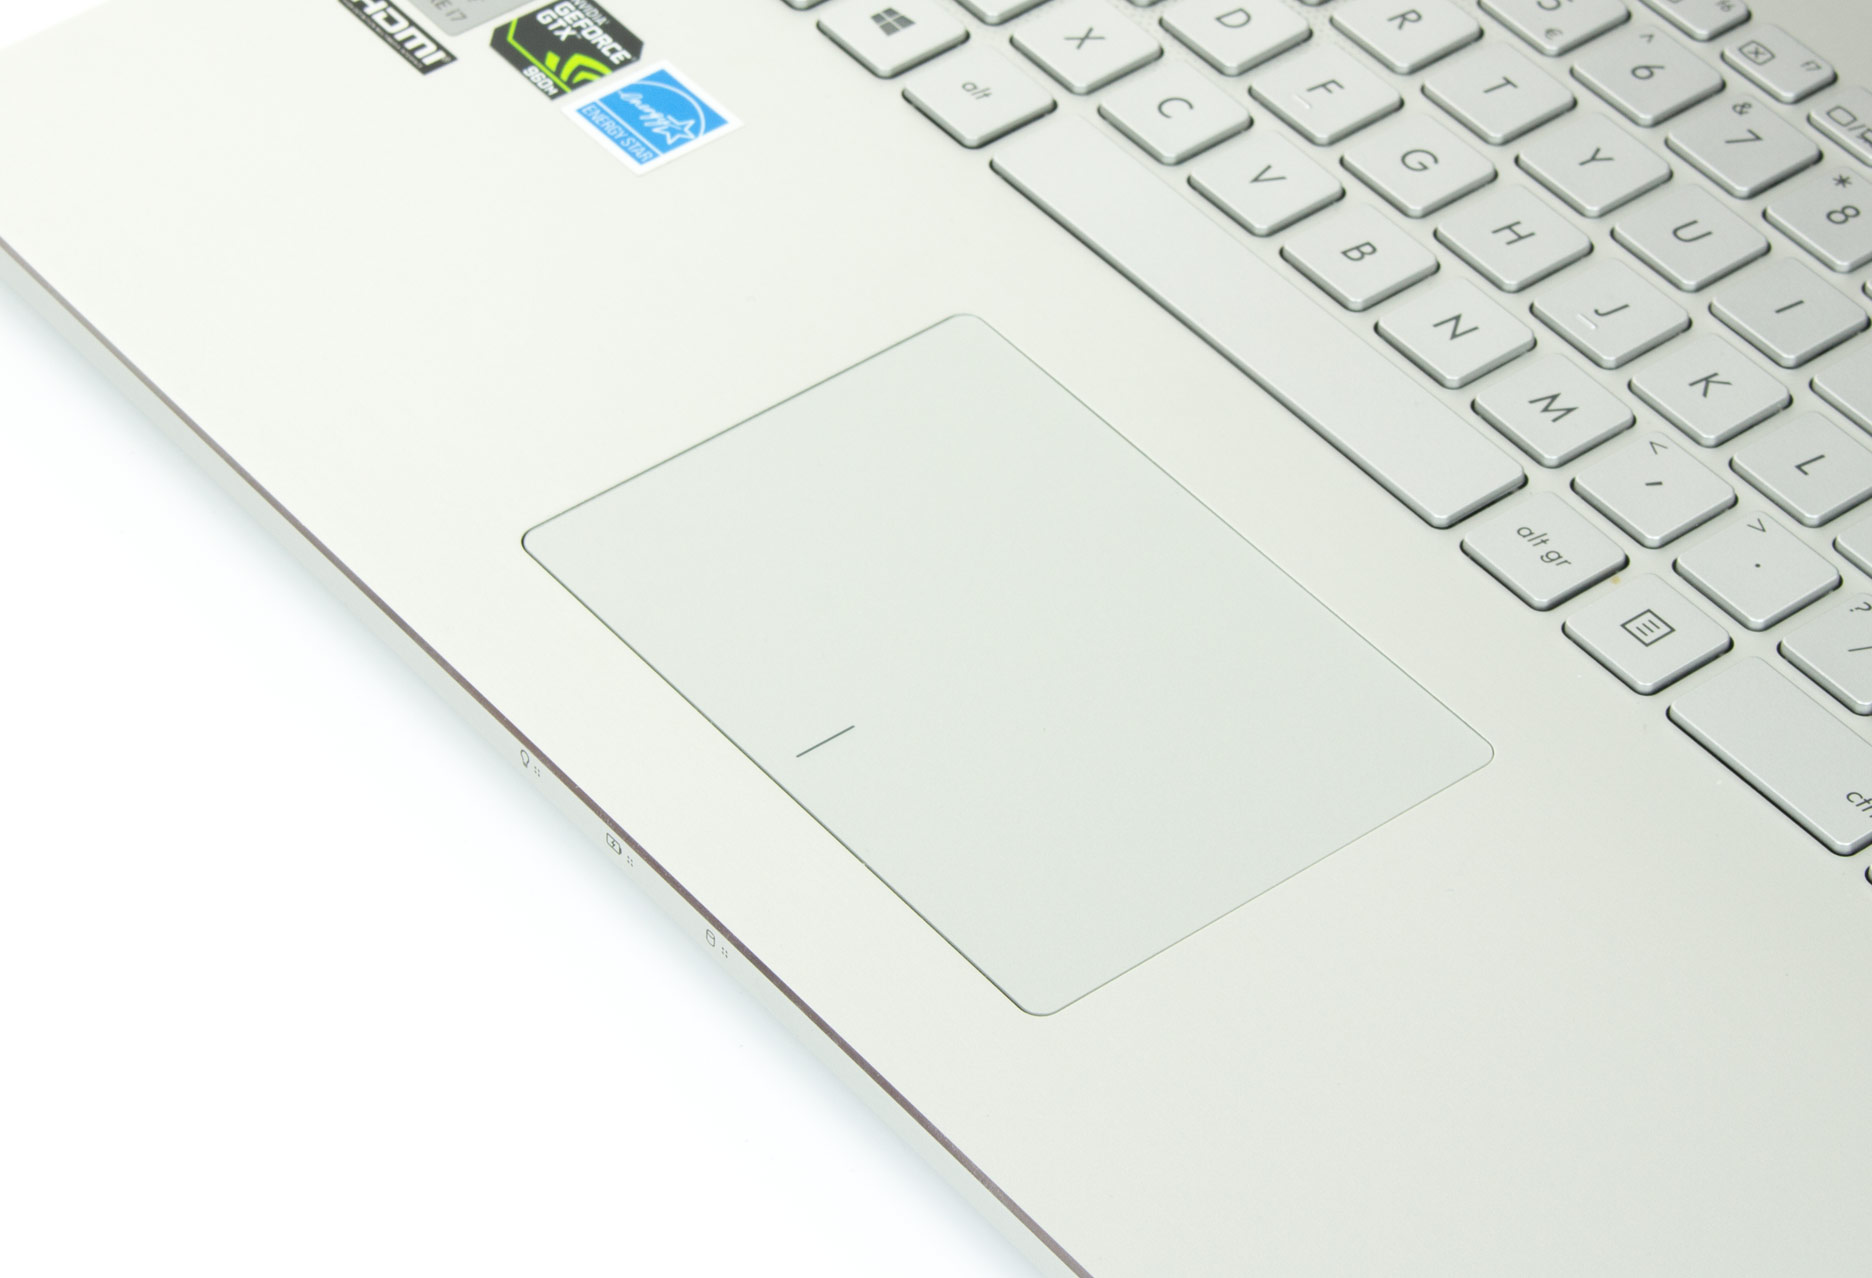 Asus Zenbook Pro UX501 touchpad